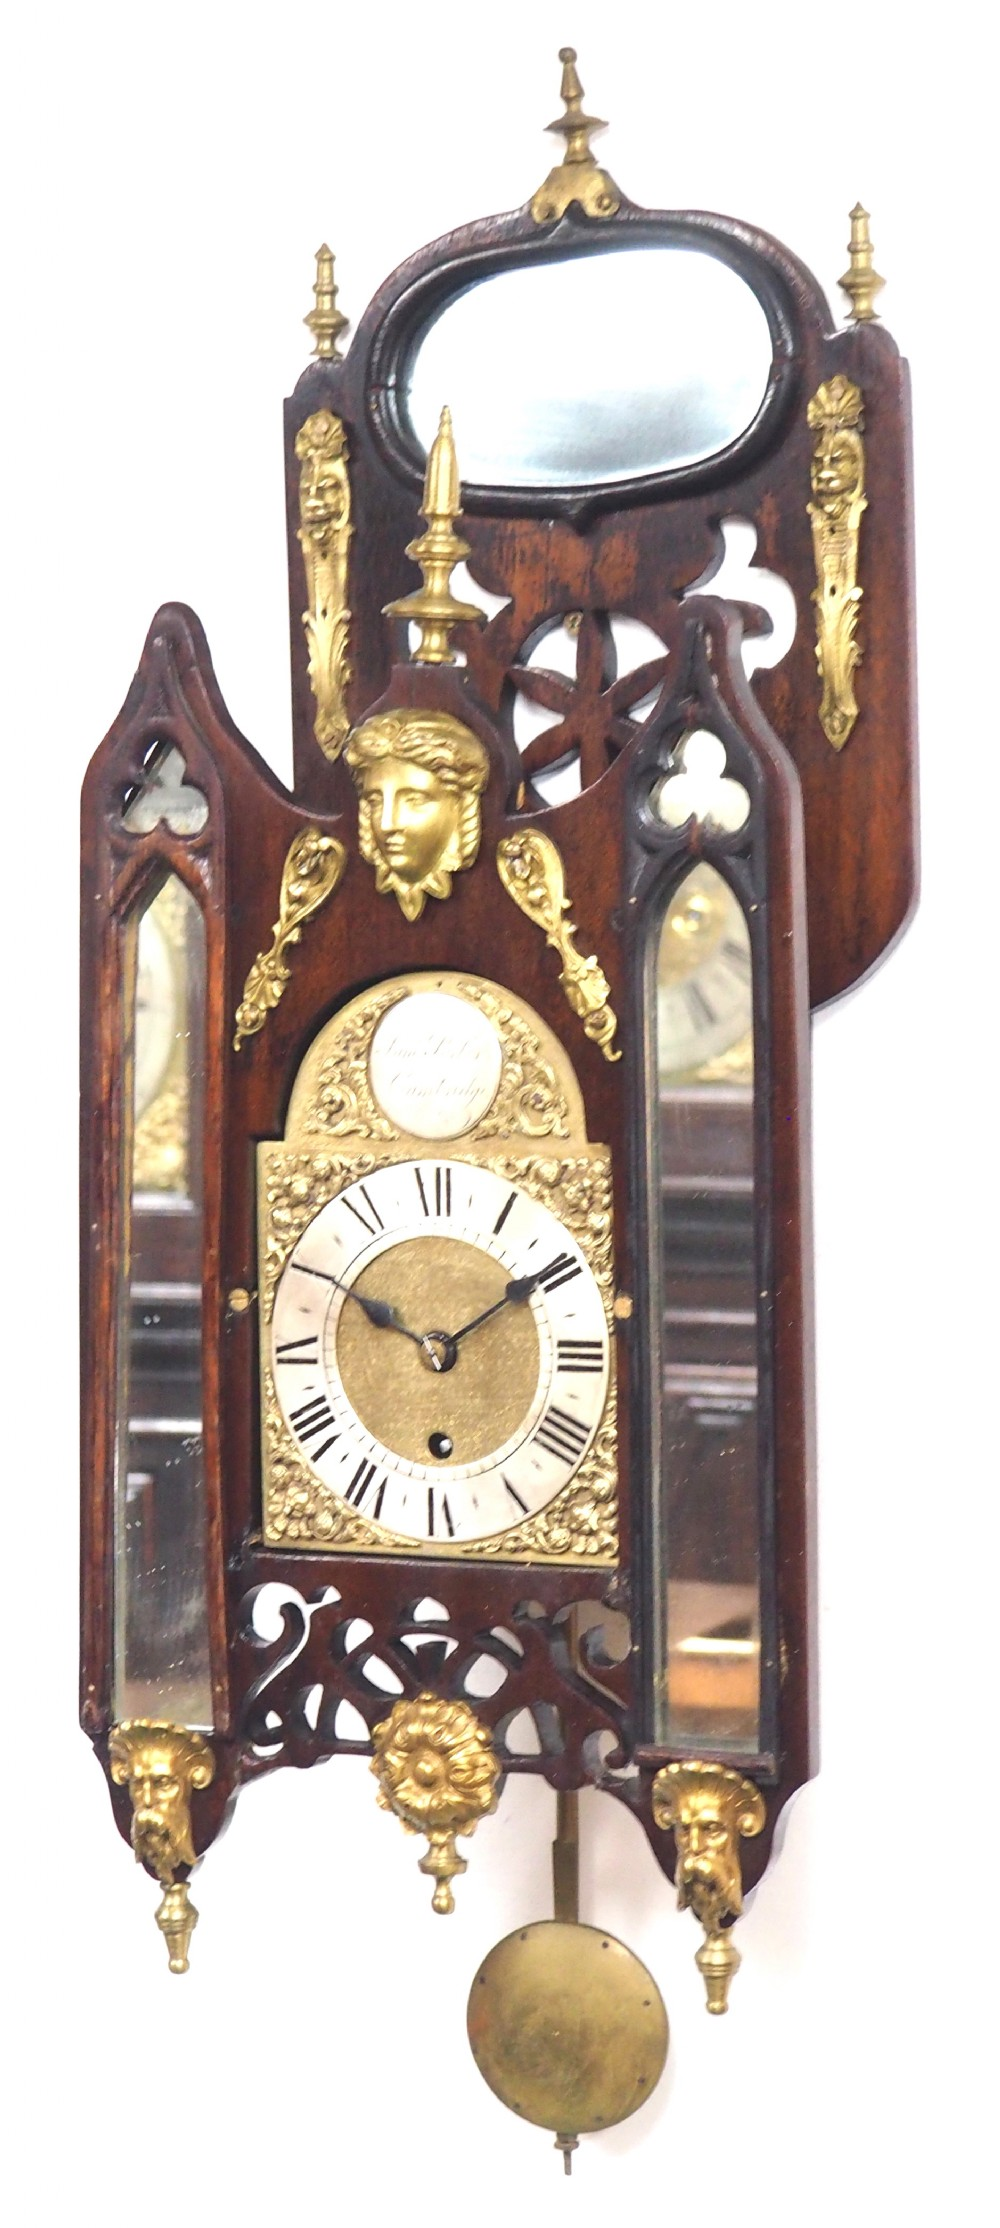 very rare english fusee 5 inch dial wall clock mahogany gothic ormolu wall clock by james parker cambridge